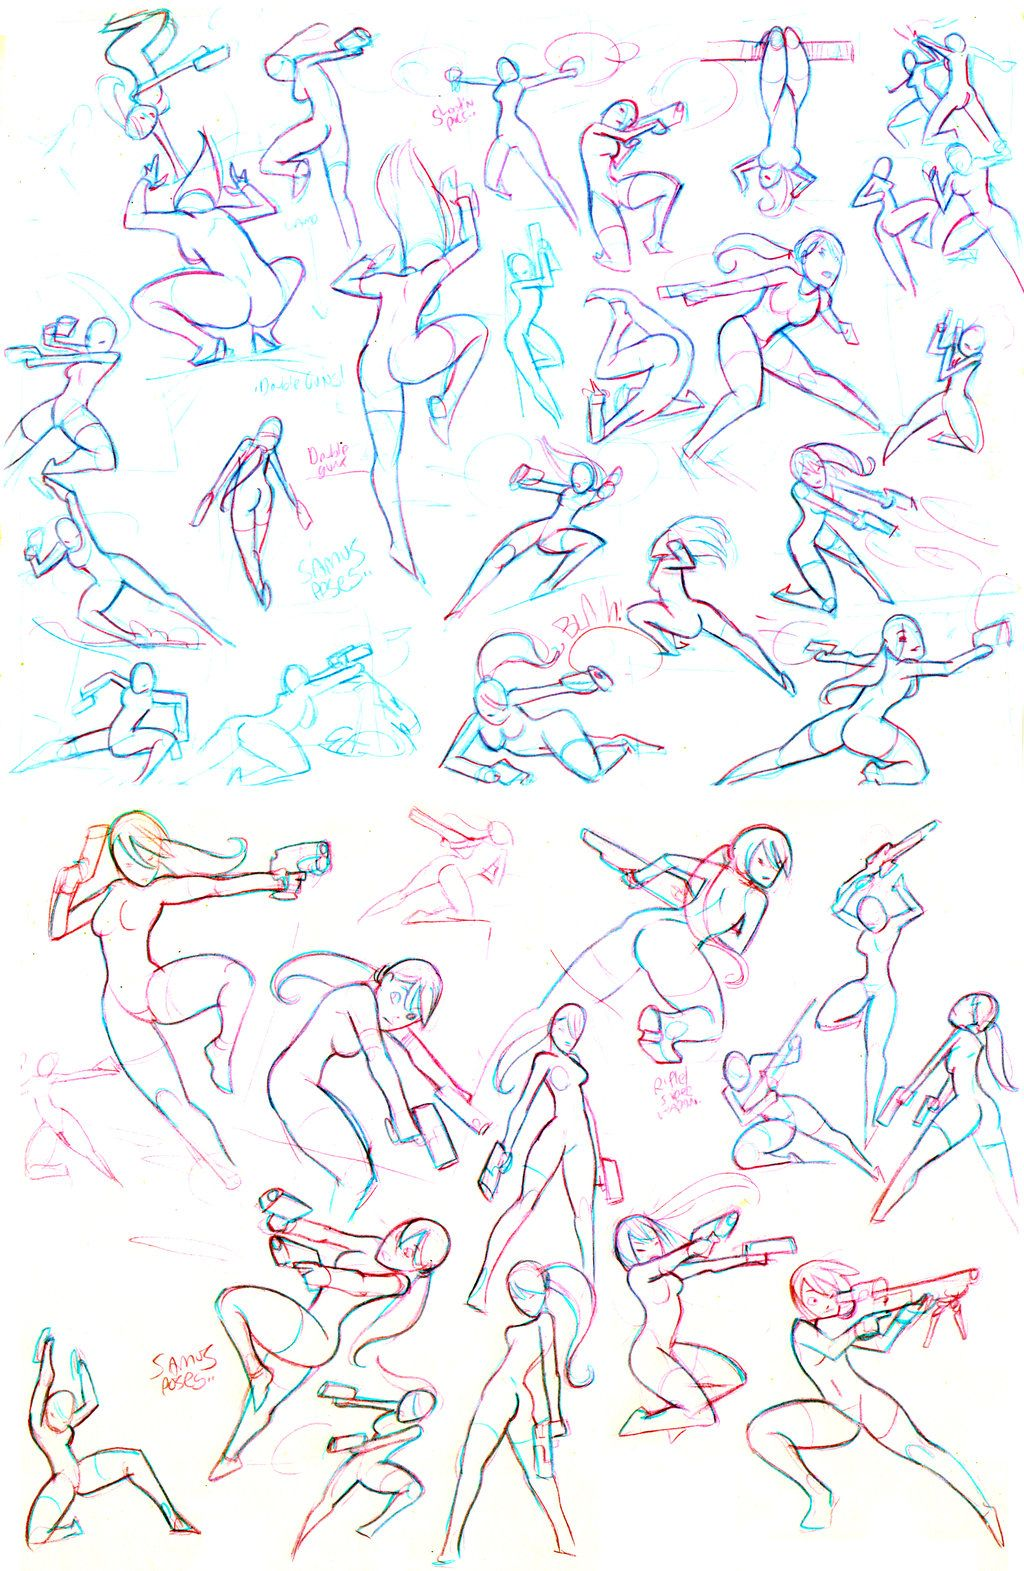 dynamic poses | pose references for doodles | Action poses, Drawing